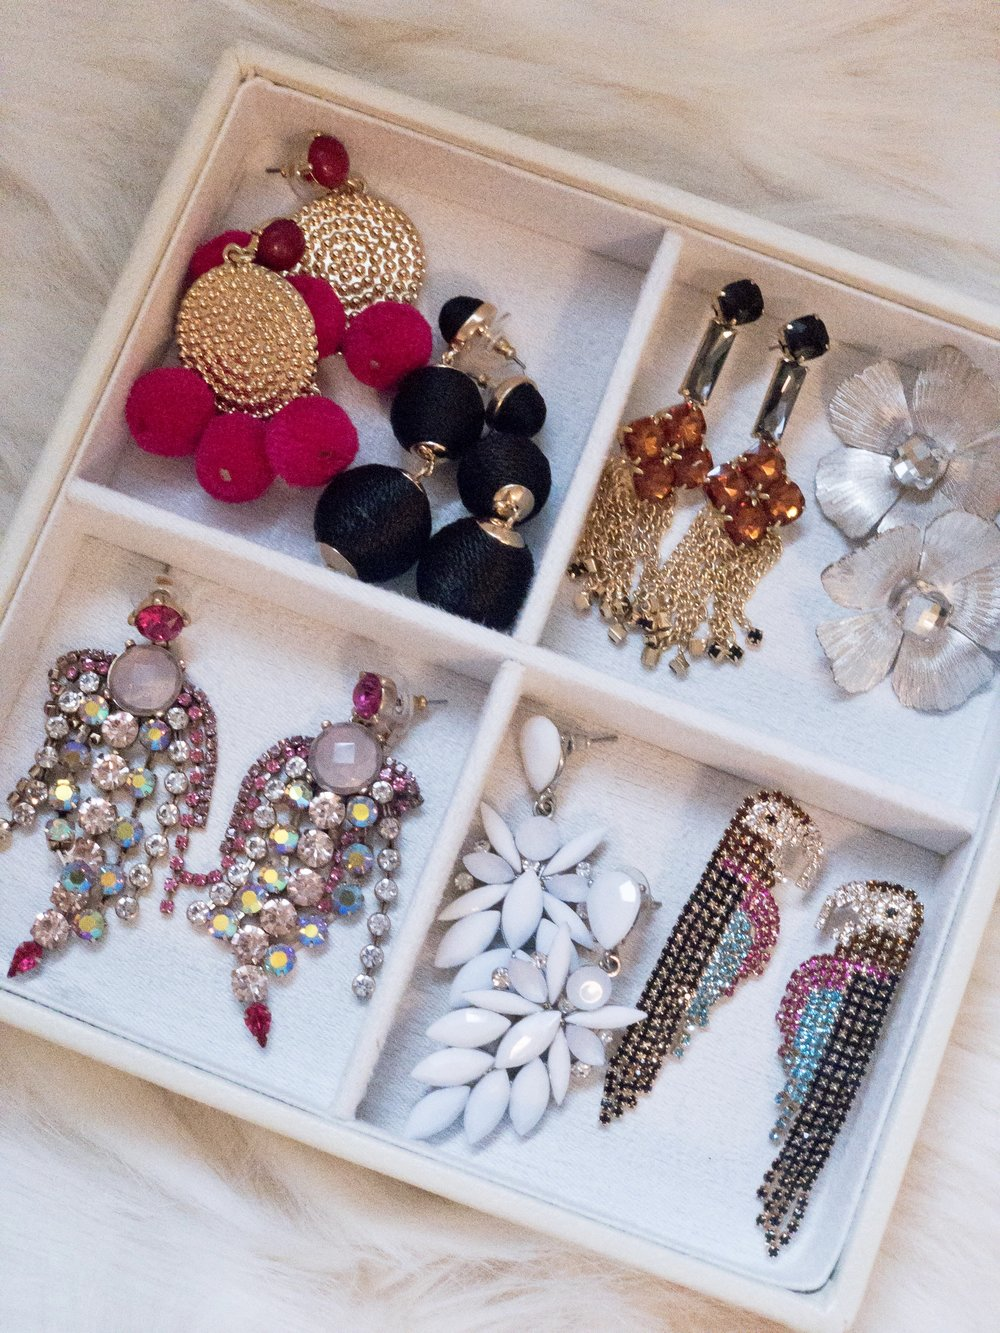 Just a few of my favorite things--earrings for spring!